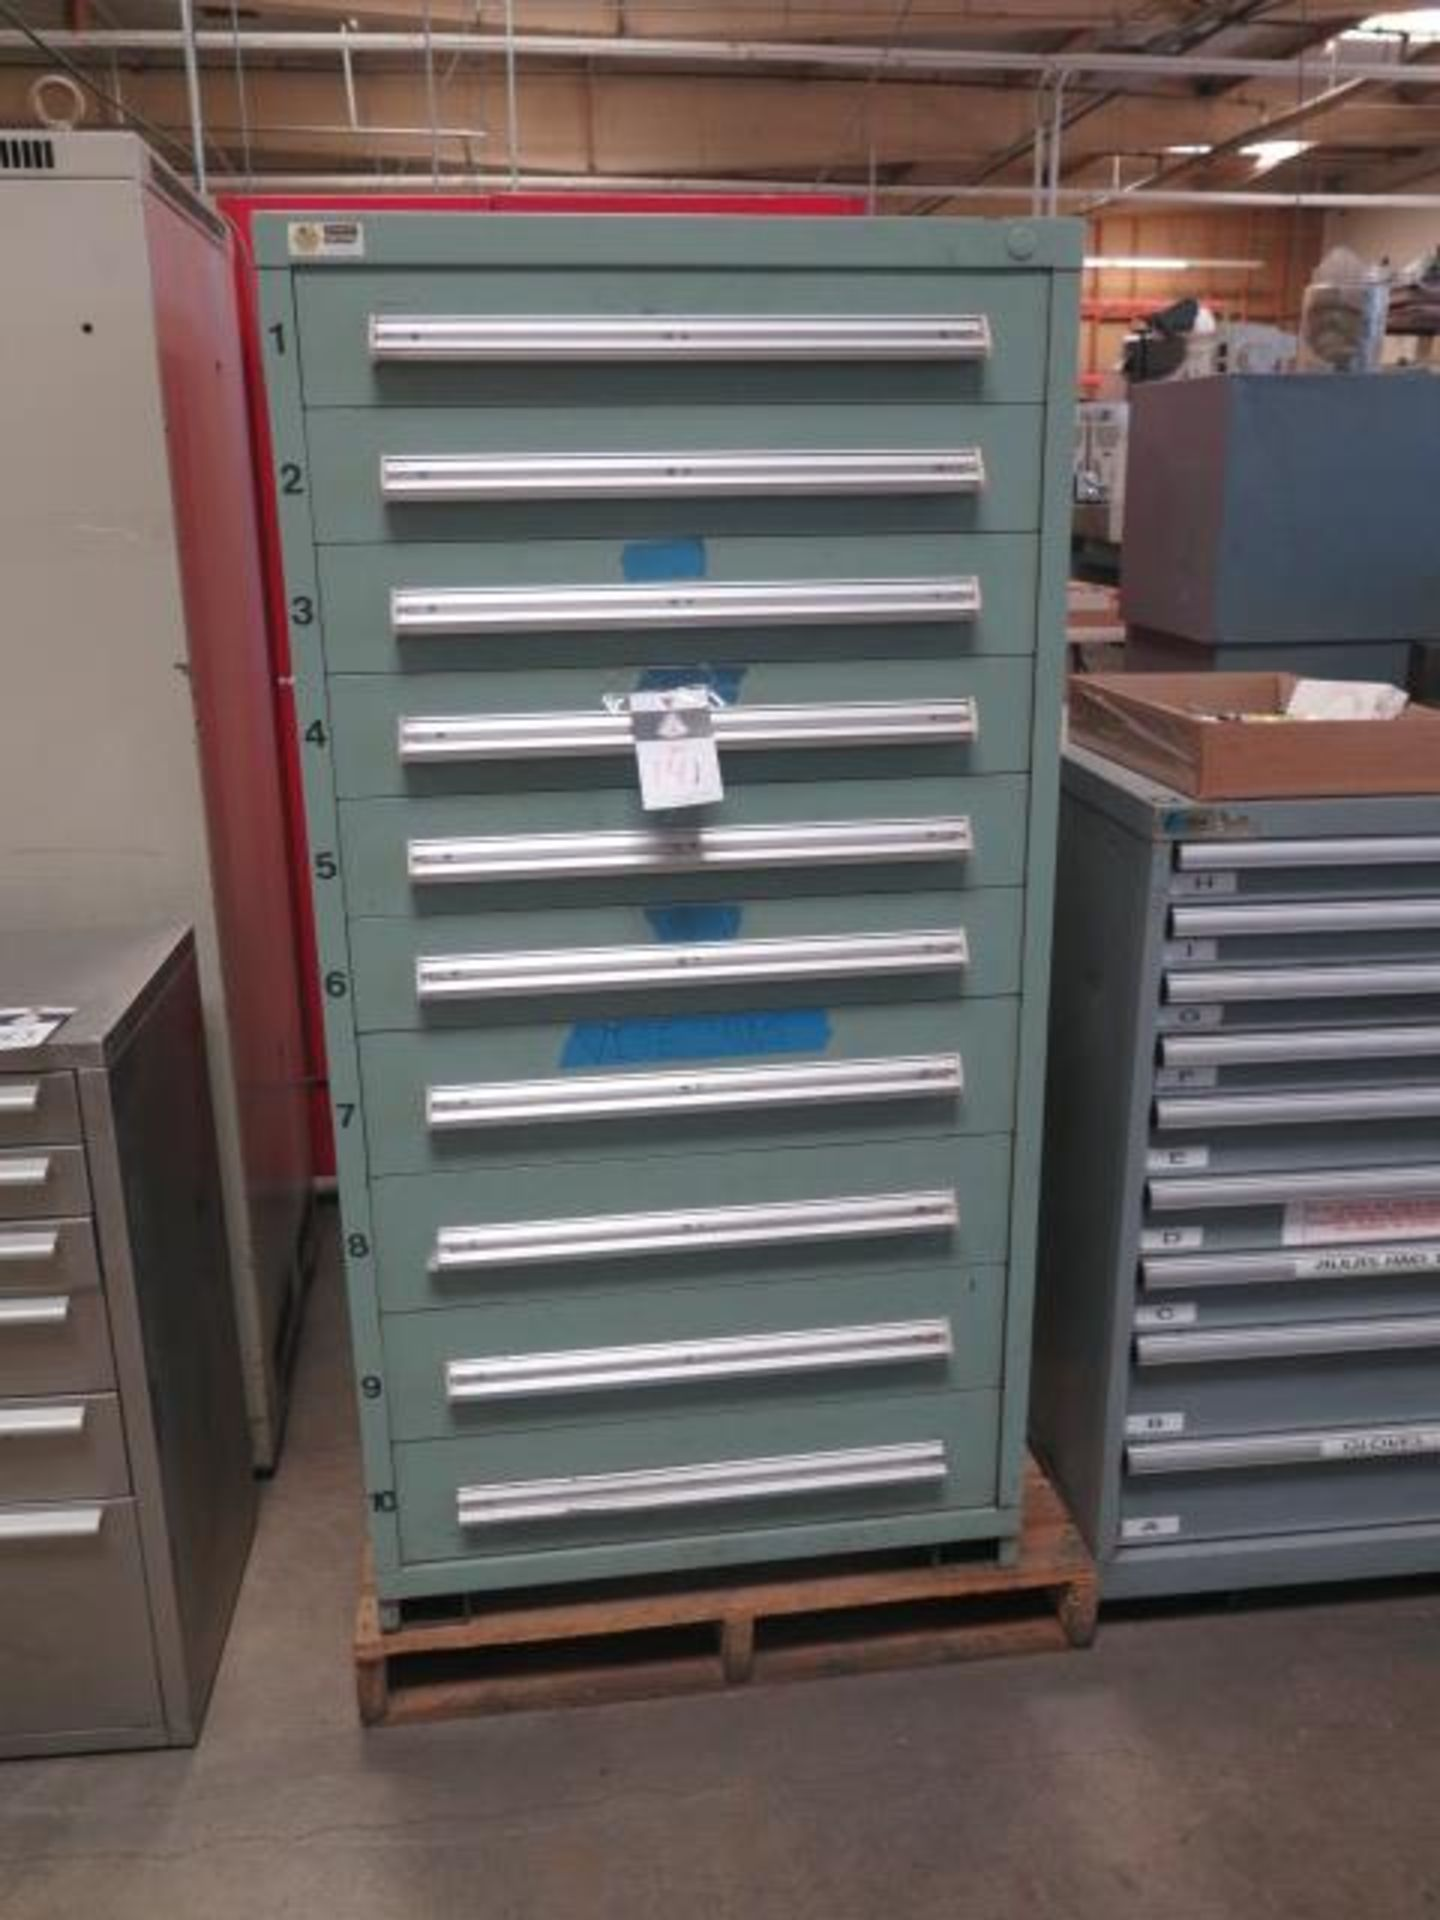 Vidmar 10-Drawer Tooling Cabinet w/ Vise Jaws (SOLD AS-IS - NO WARRANTY)